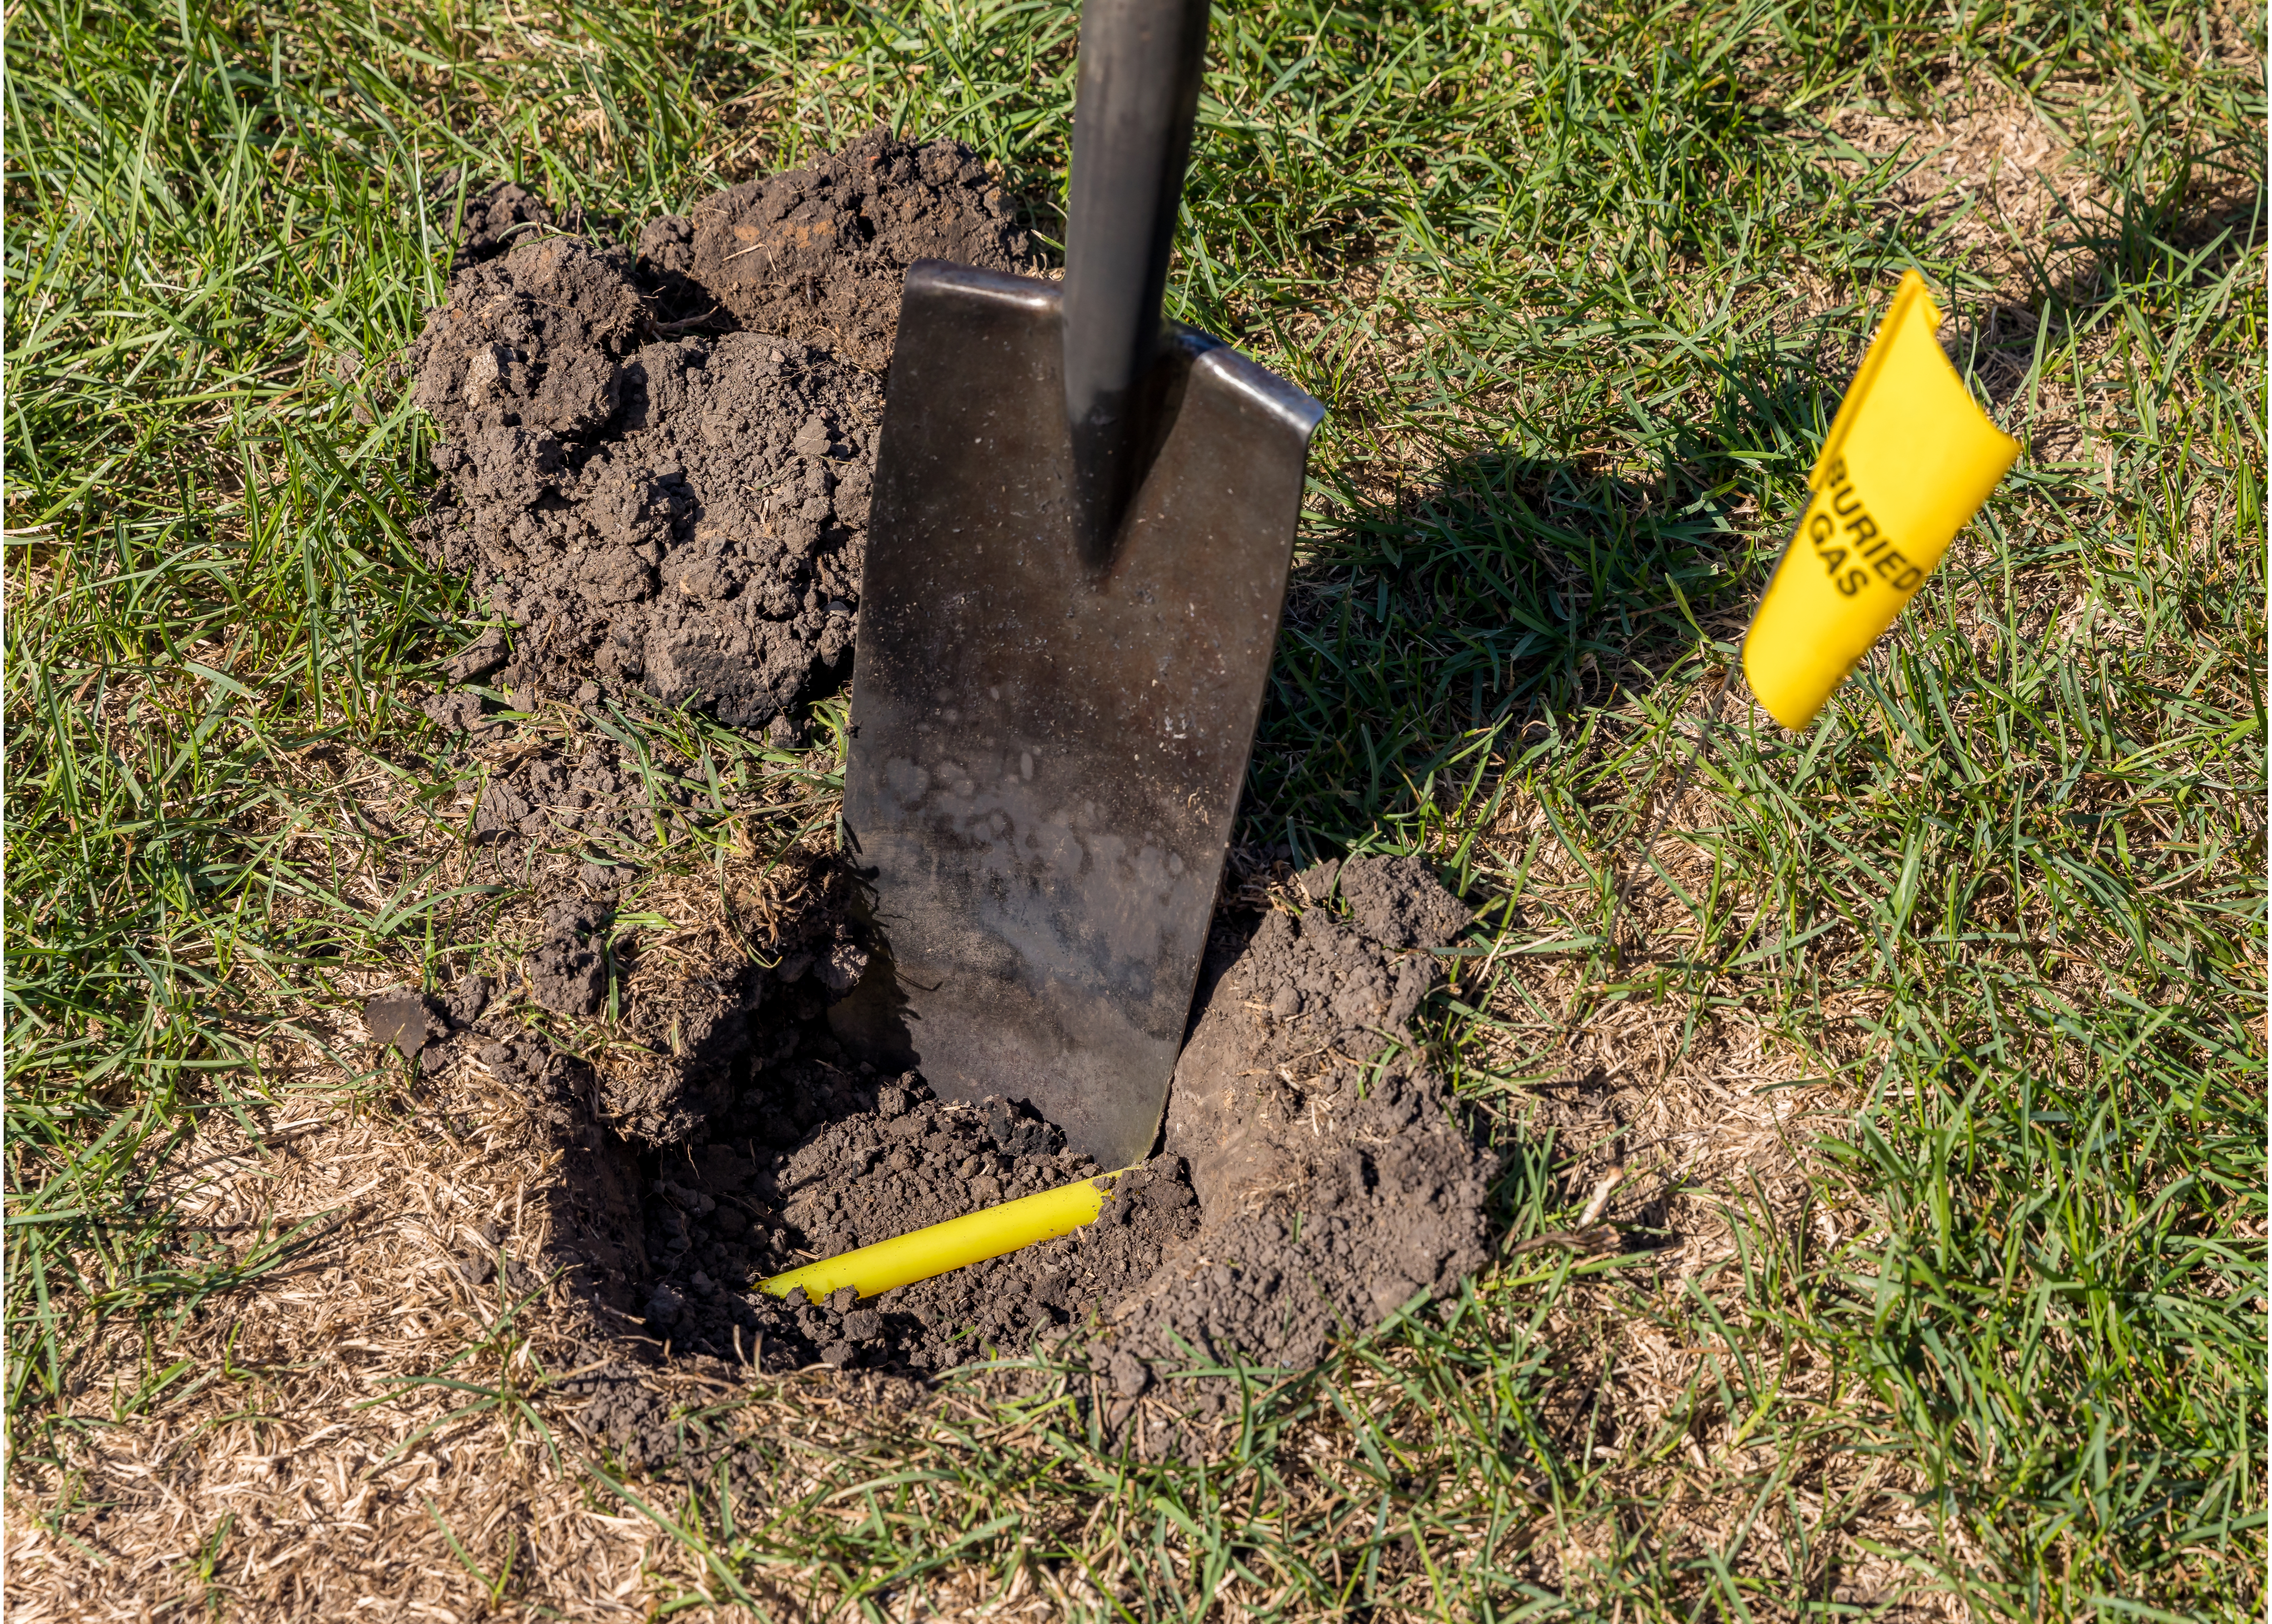 Hole in yard with yellow plastic natural gas utility lines buried in ground, shovel and with natural gas warning flag